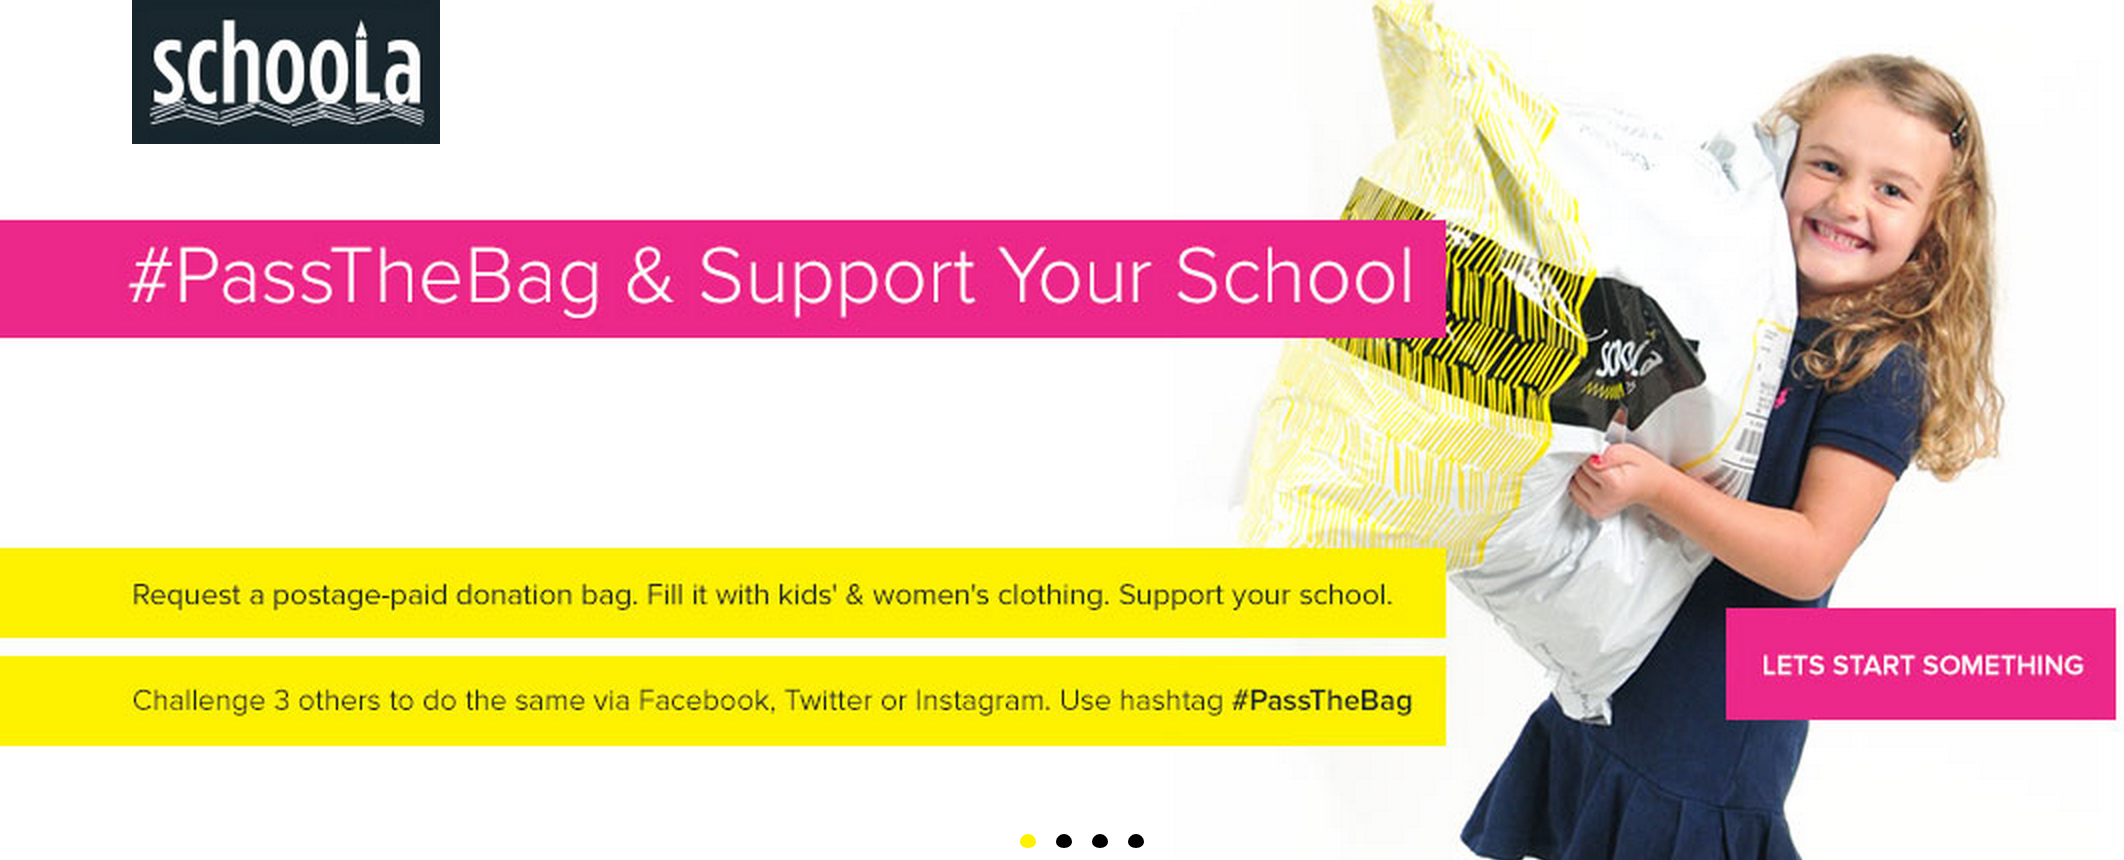 Schoola Request a Bag for Donation- 40% proceeds go back to school of your choice.